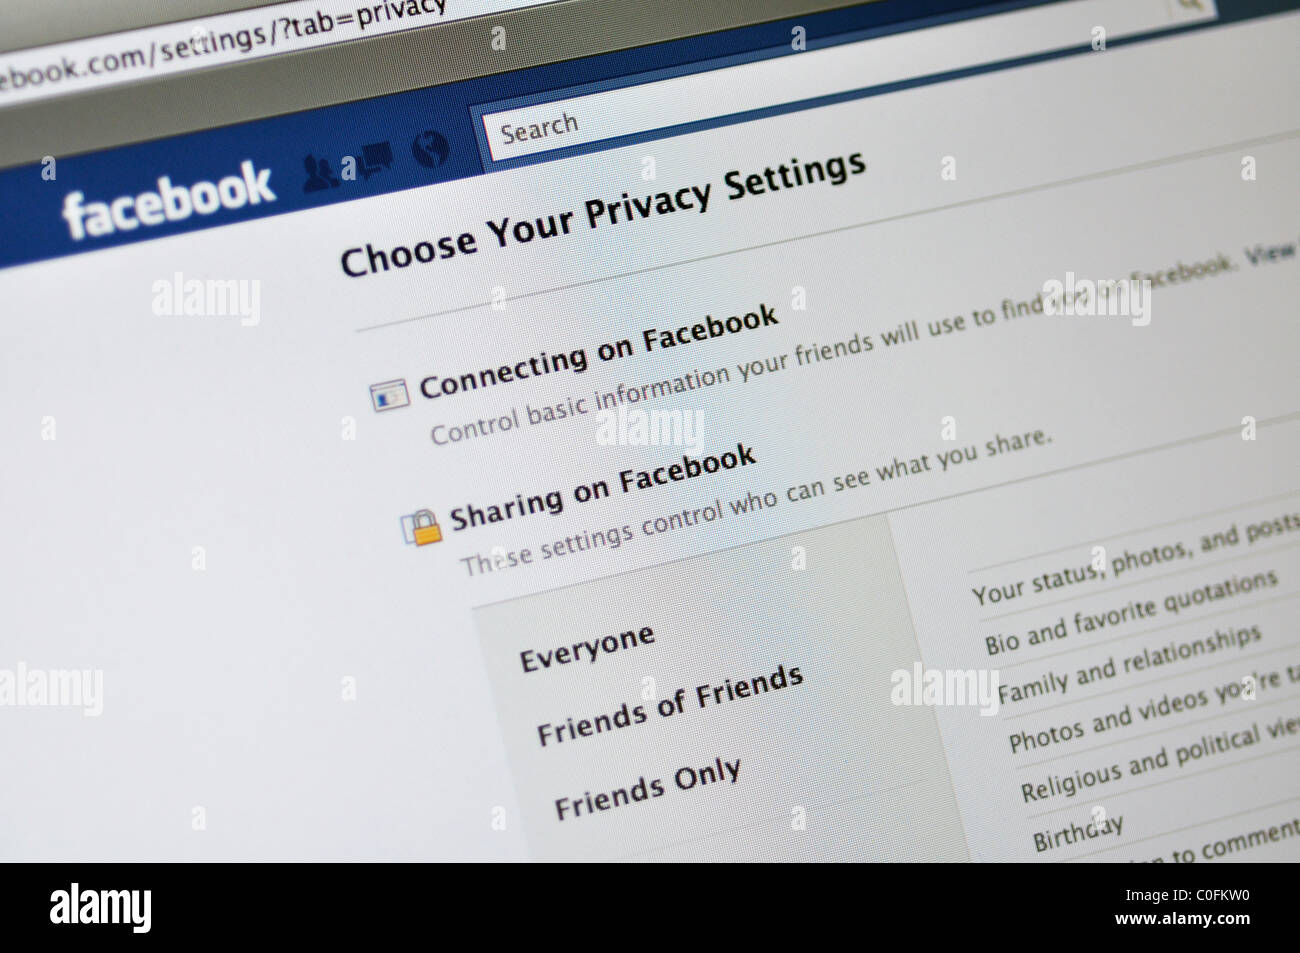 Facebook privacy settiings website - Stock Image